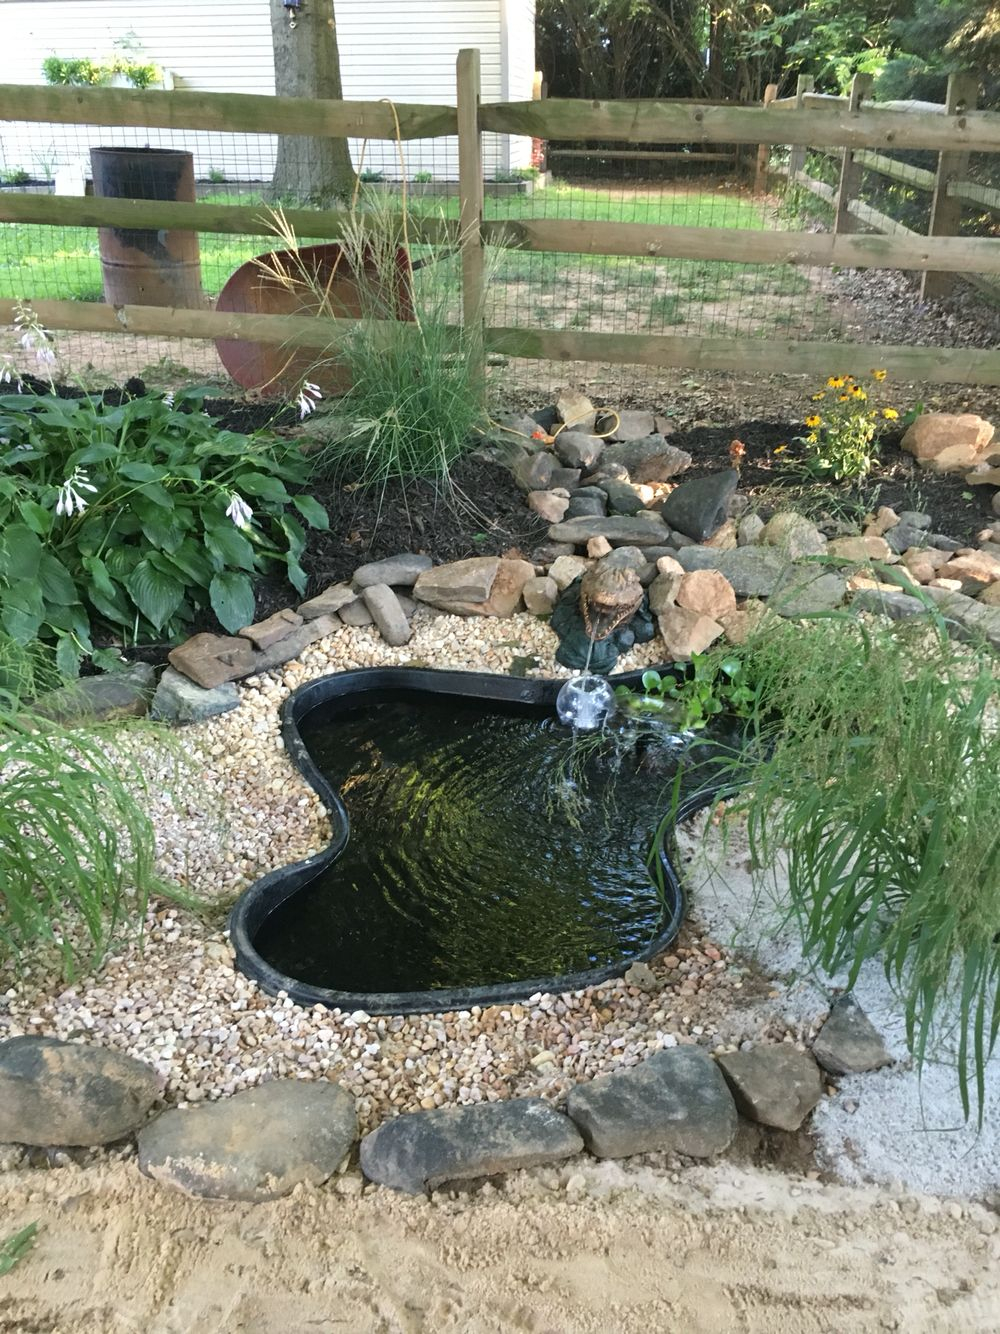 Backyard Pond Garden Ponds Backyard Backyard Ducks Duck Coop in 13 Some of the Coolest Initiatives of How to Upgrade Backyard Duck Pond Ideas